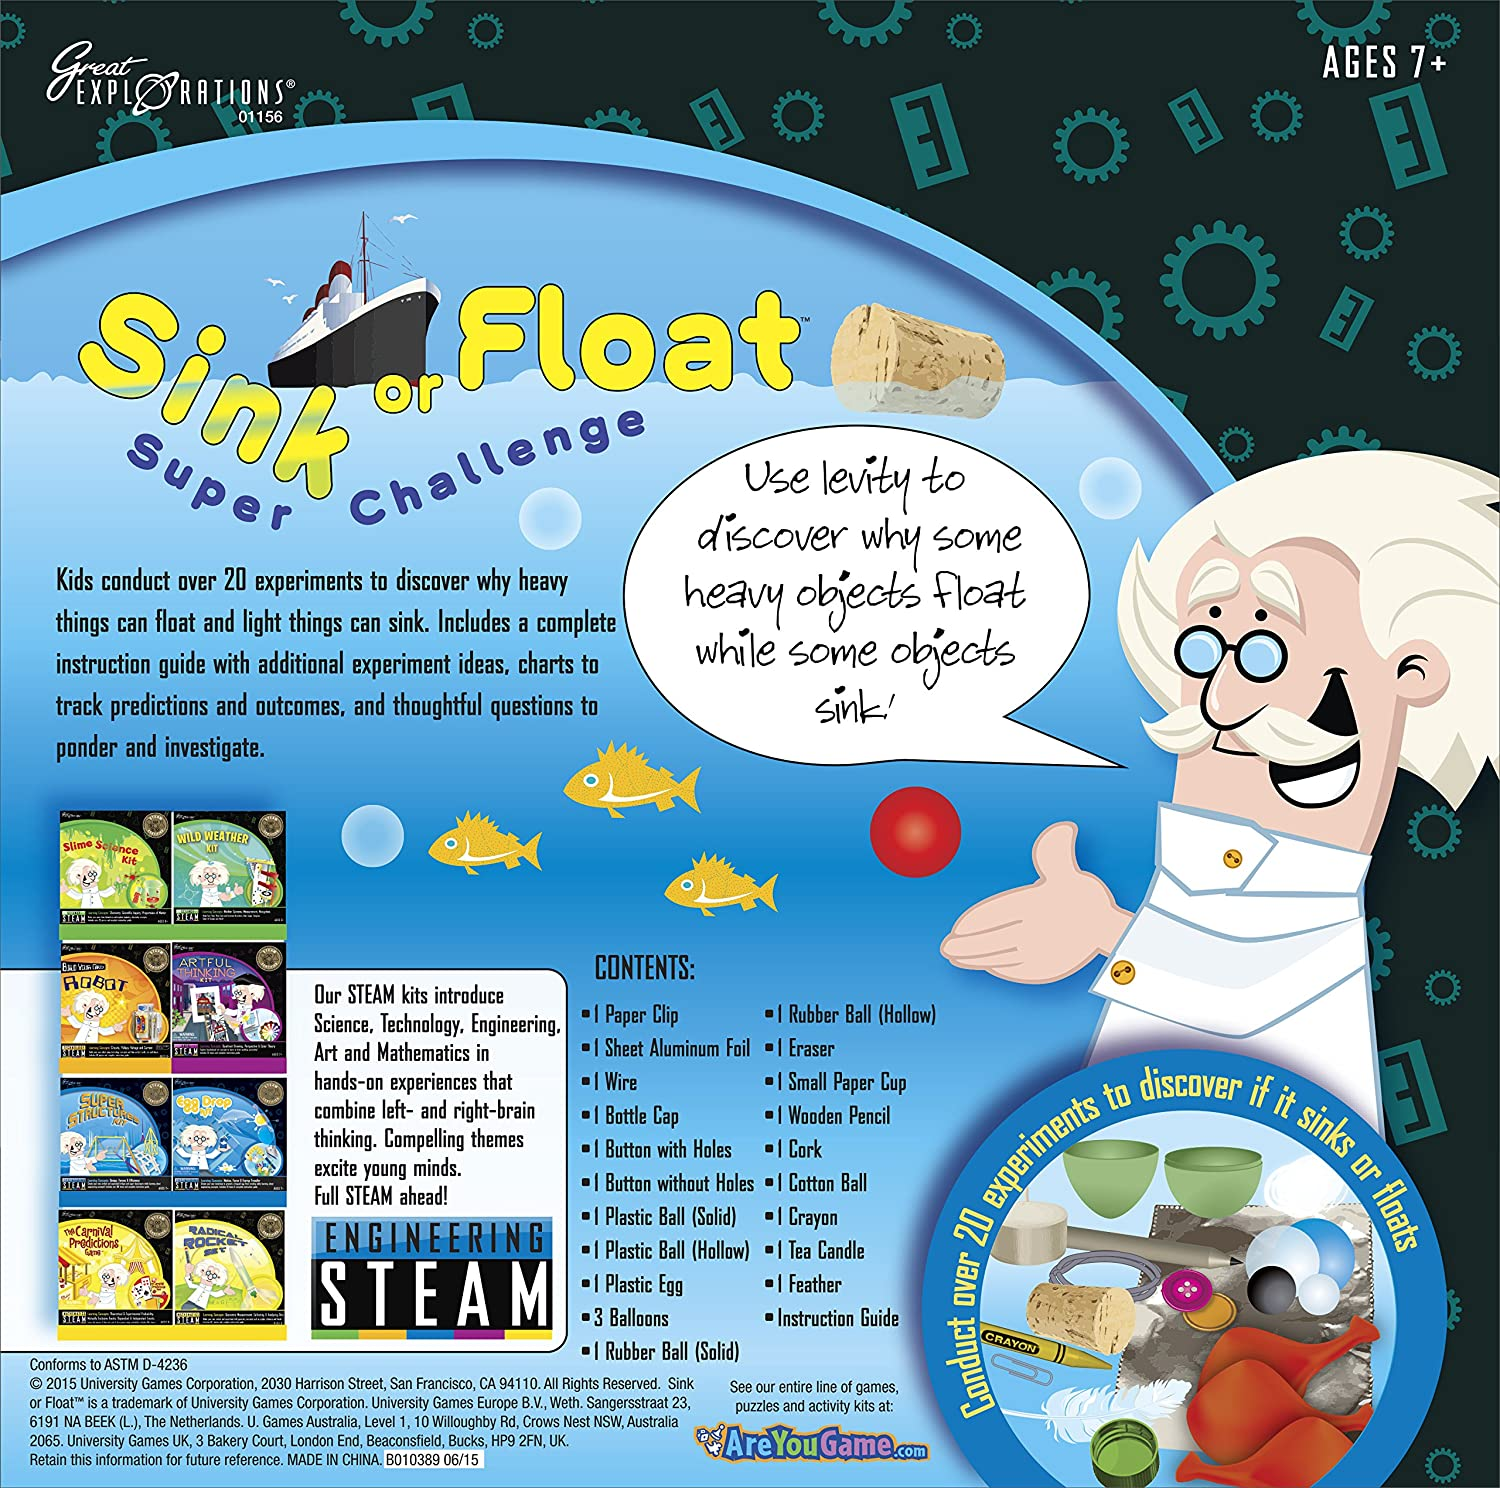 Great Explorations Sink or Float